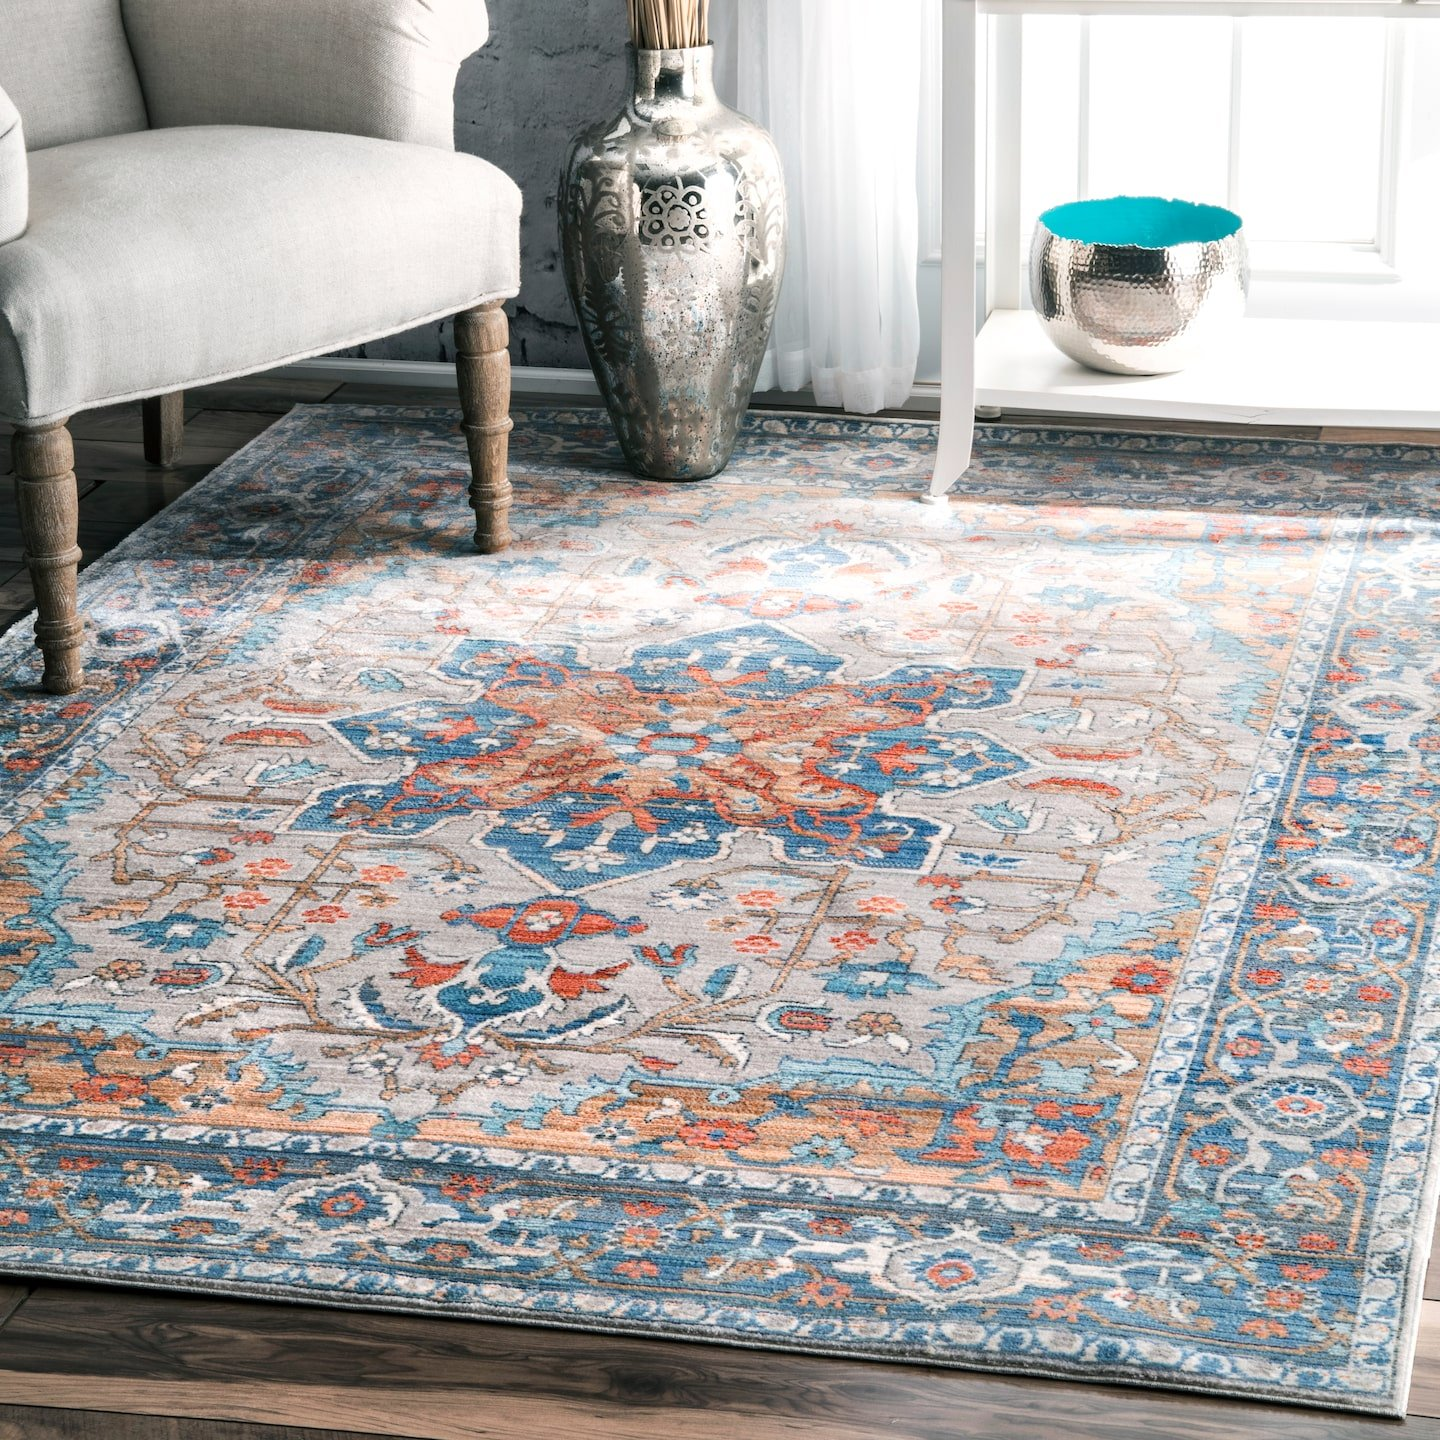 nuLOOM Caterina Persian Medallion Area Rug, 5 3 x 7 7 , Grey